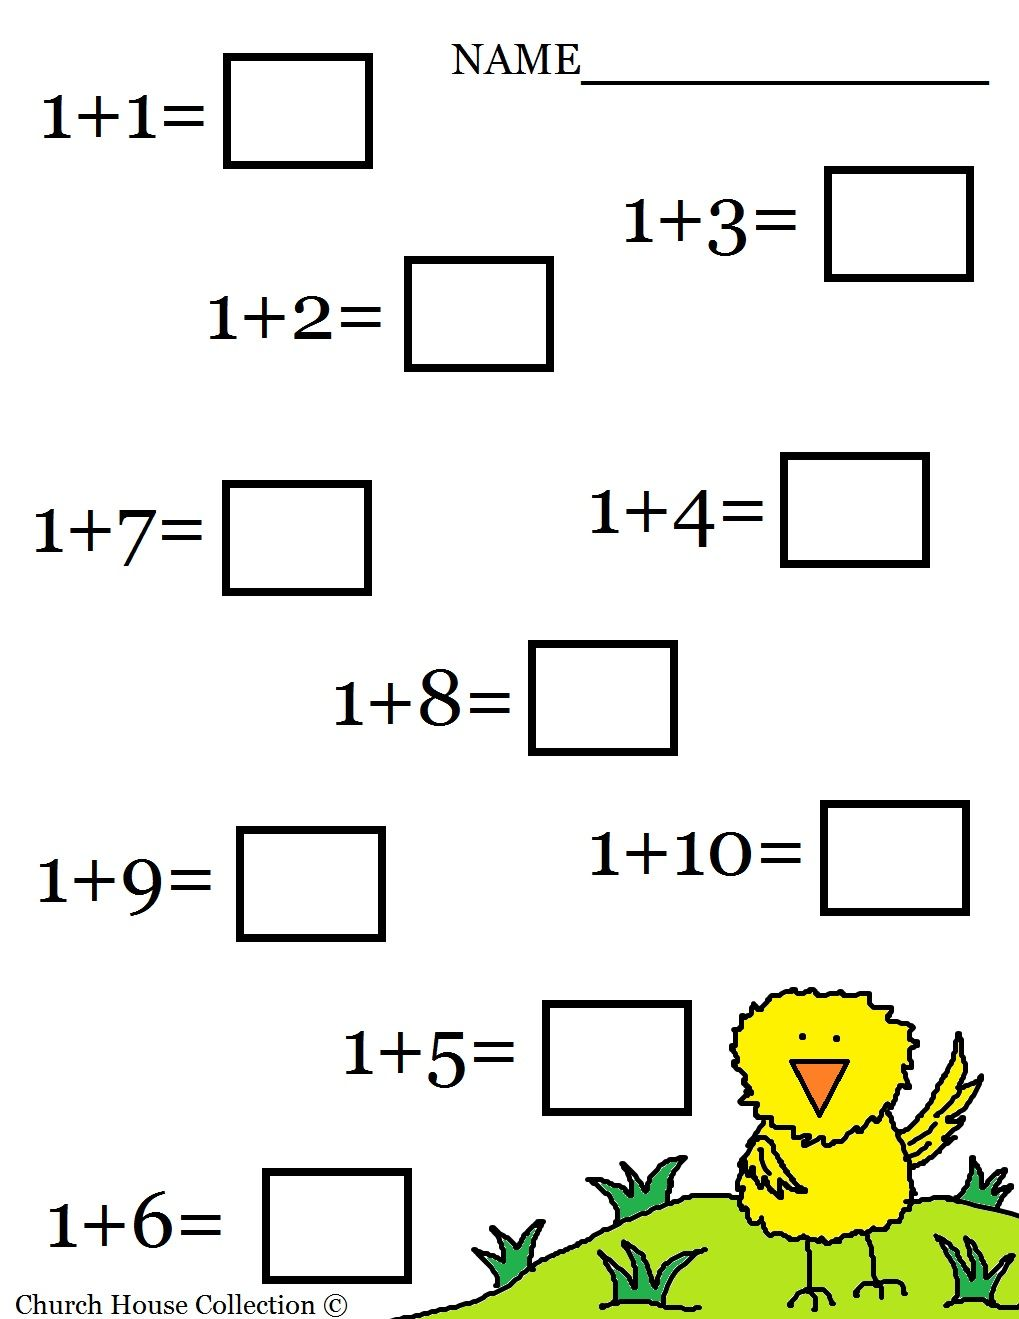 Aldiablosus  Unusual  Images About Worksheets  Math On Pinterest  Math Sheets  With Exciting  Images About Worksheets  Math On Pinterest  Math Sheets Math Worksheets For Kindergarten And Simple Addition With Attractive Th Grade Math Practice Worksheets Also Elements Of A Short Story Worksheet In Addition Possessives Worksheet And Ez Line  Worksheet As Well As Equivalent Ratio Worksheets Additionally Corporal Works Of Mercy Worksheet From Pinterestcom With Aldiablosus  Exciting  Images About Worksheets  Math On Pinterest  Math Sheets  With Attractive  Images About Worksheets  Math On Pinterest  Math Sheets Math Worksheets For Kindergarten And Simple Addition And Unusual Th Grade Math Practice Worksheets Also Elements Of A Short Story Worksheet In Addition Possessives Worksheet From Pinterestcom